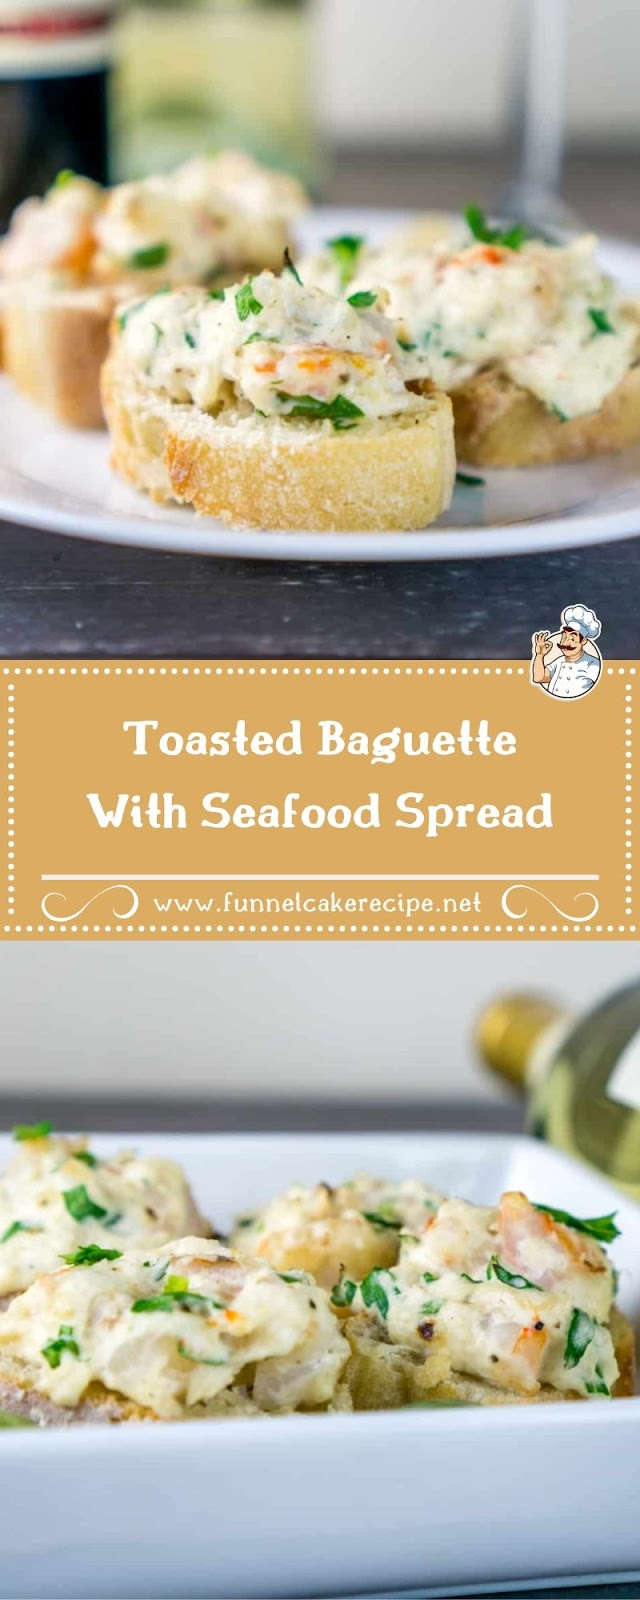 Toasted Baguette With Seafood Spread